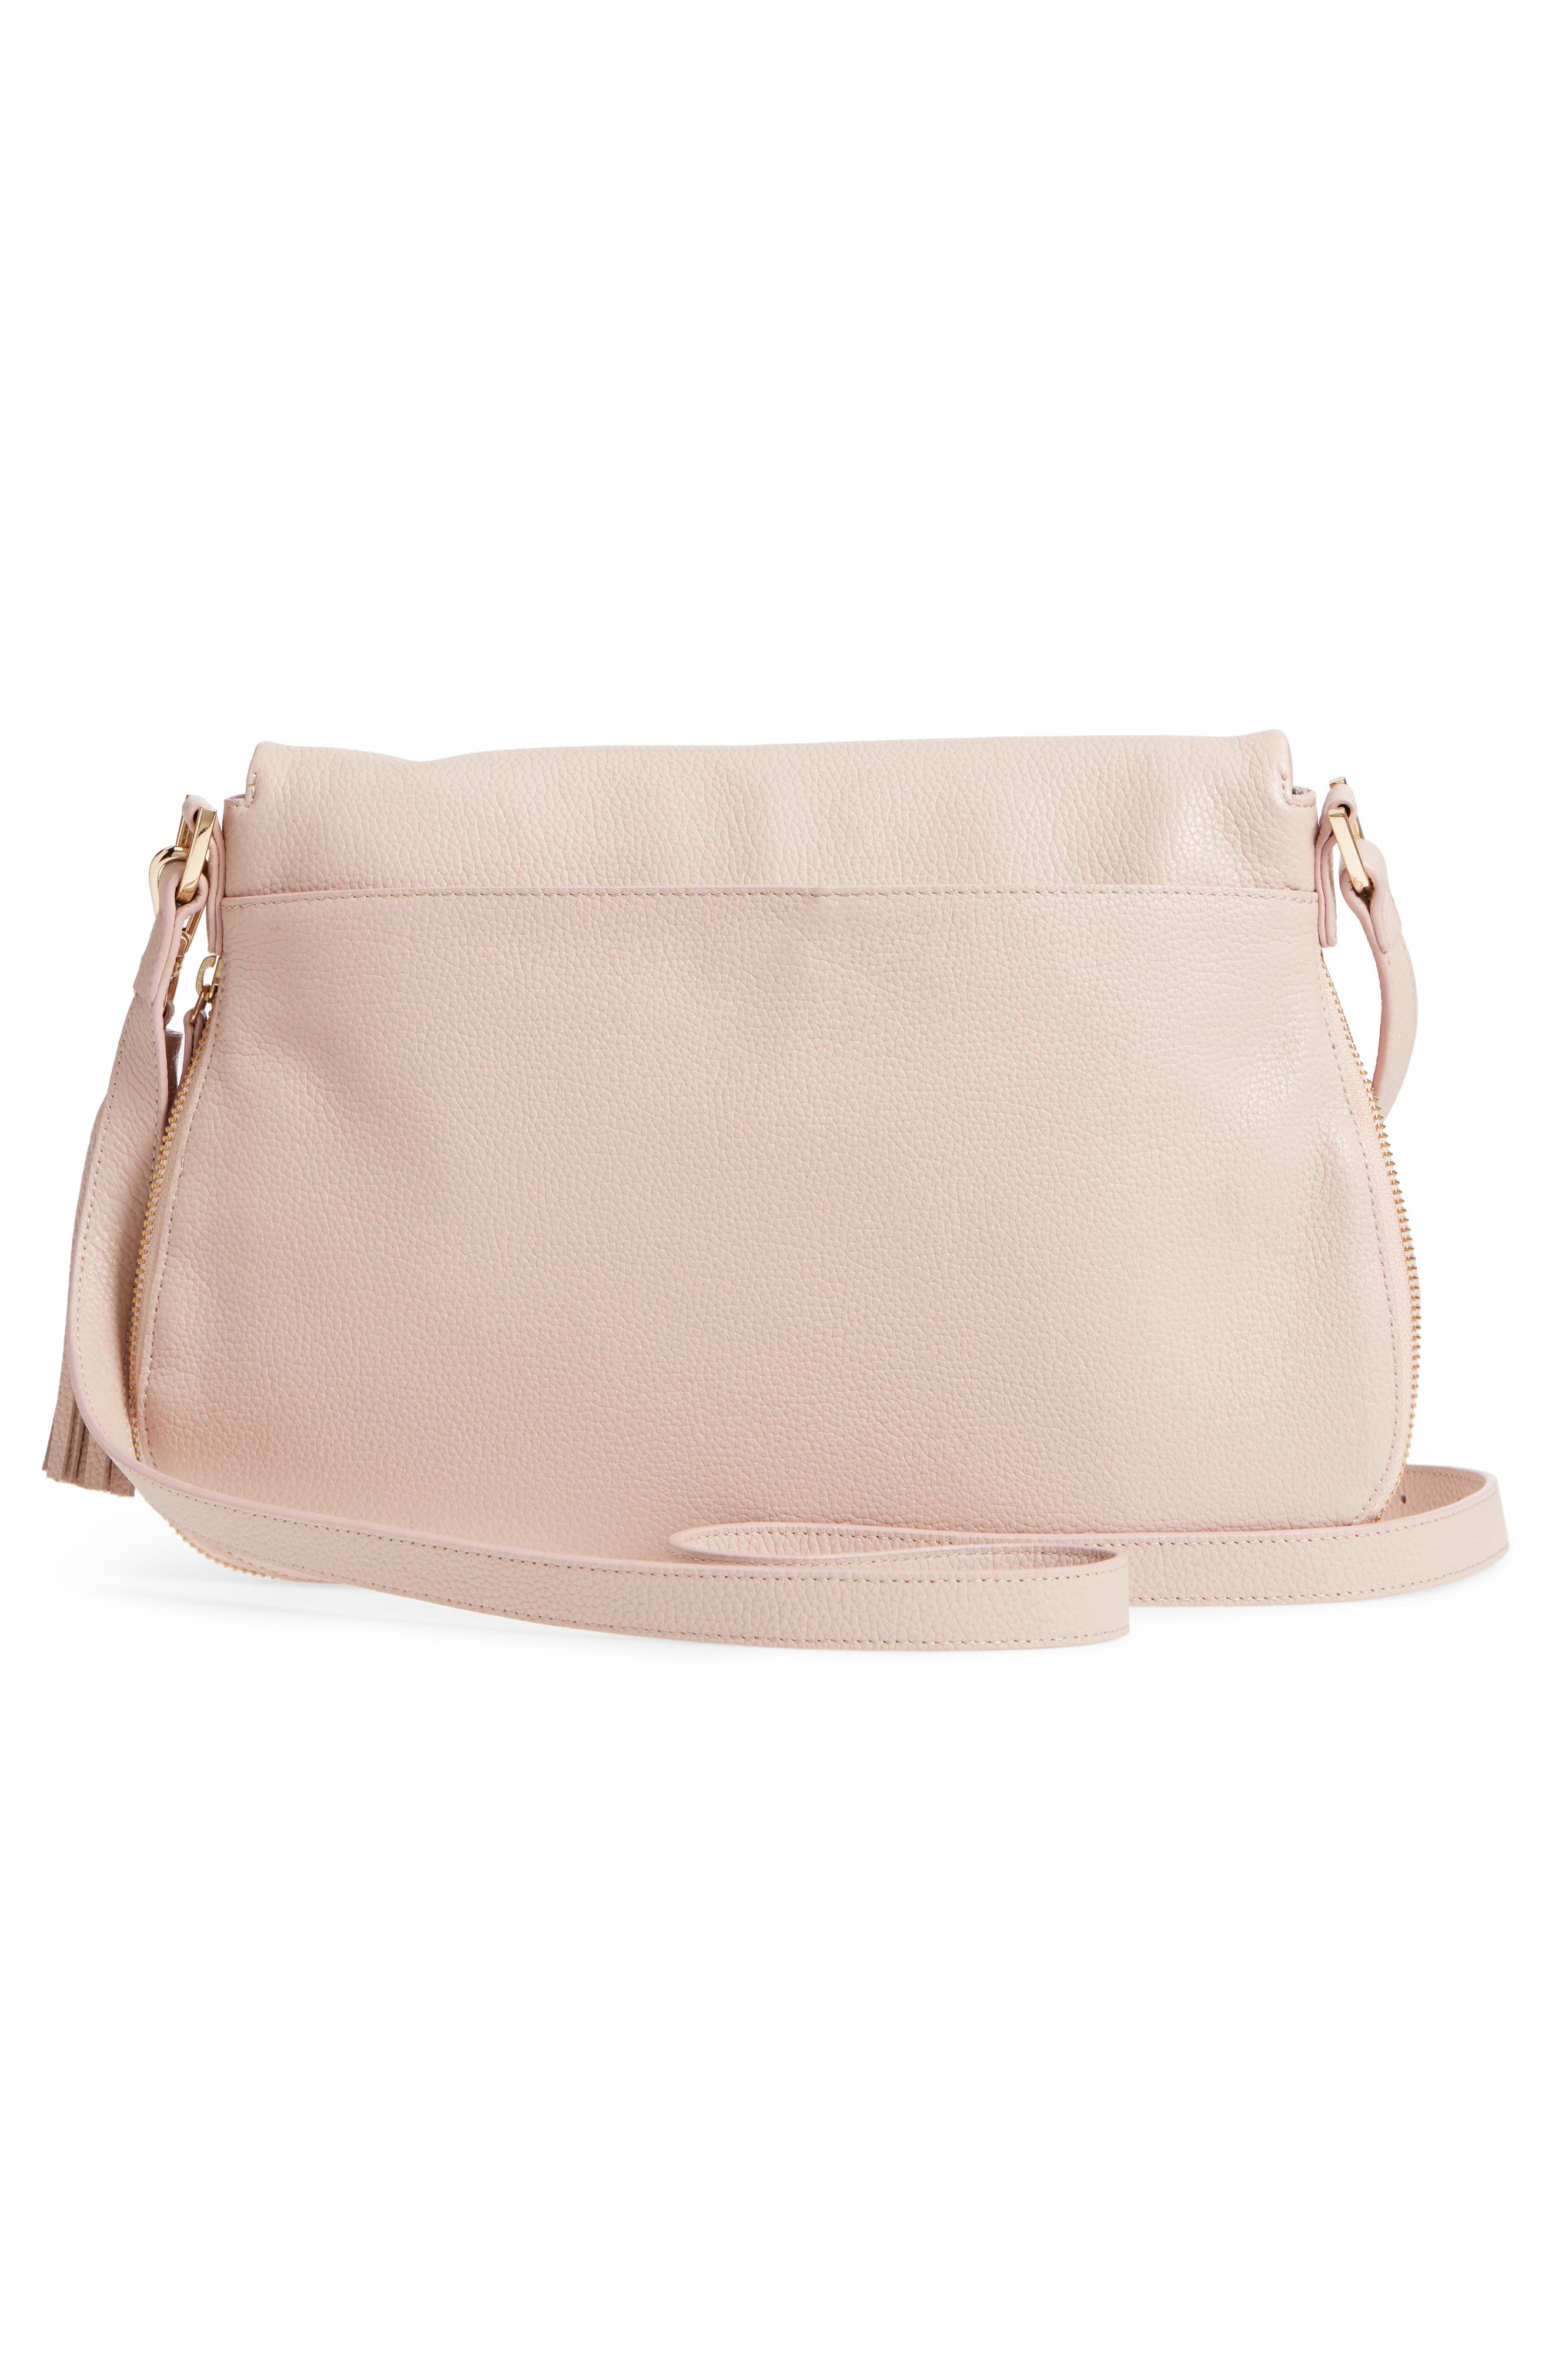 Kara Leather Expandable Crossbody Bag,                             Alternate thumbnail 3, color,                             PINK ROSECLOUD